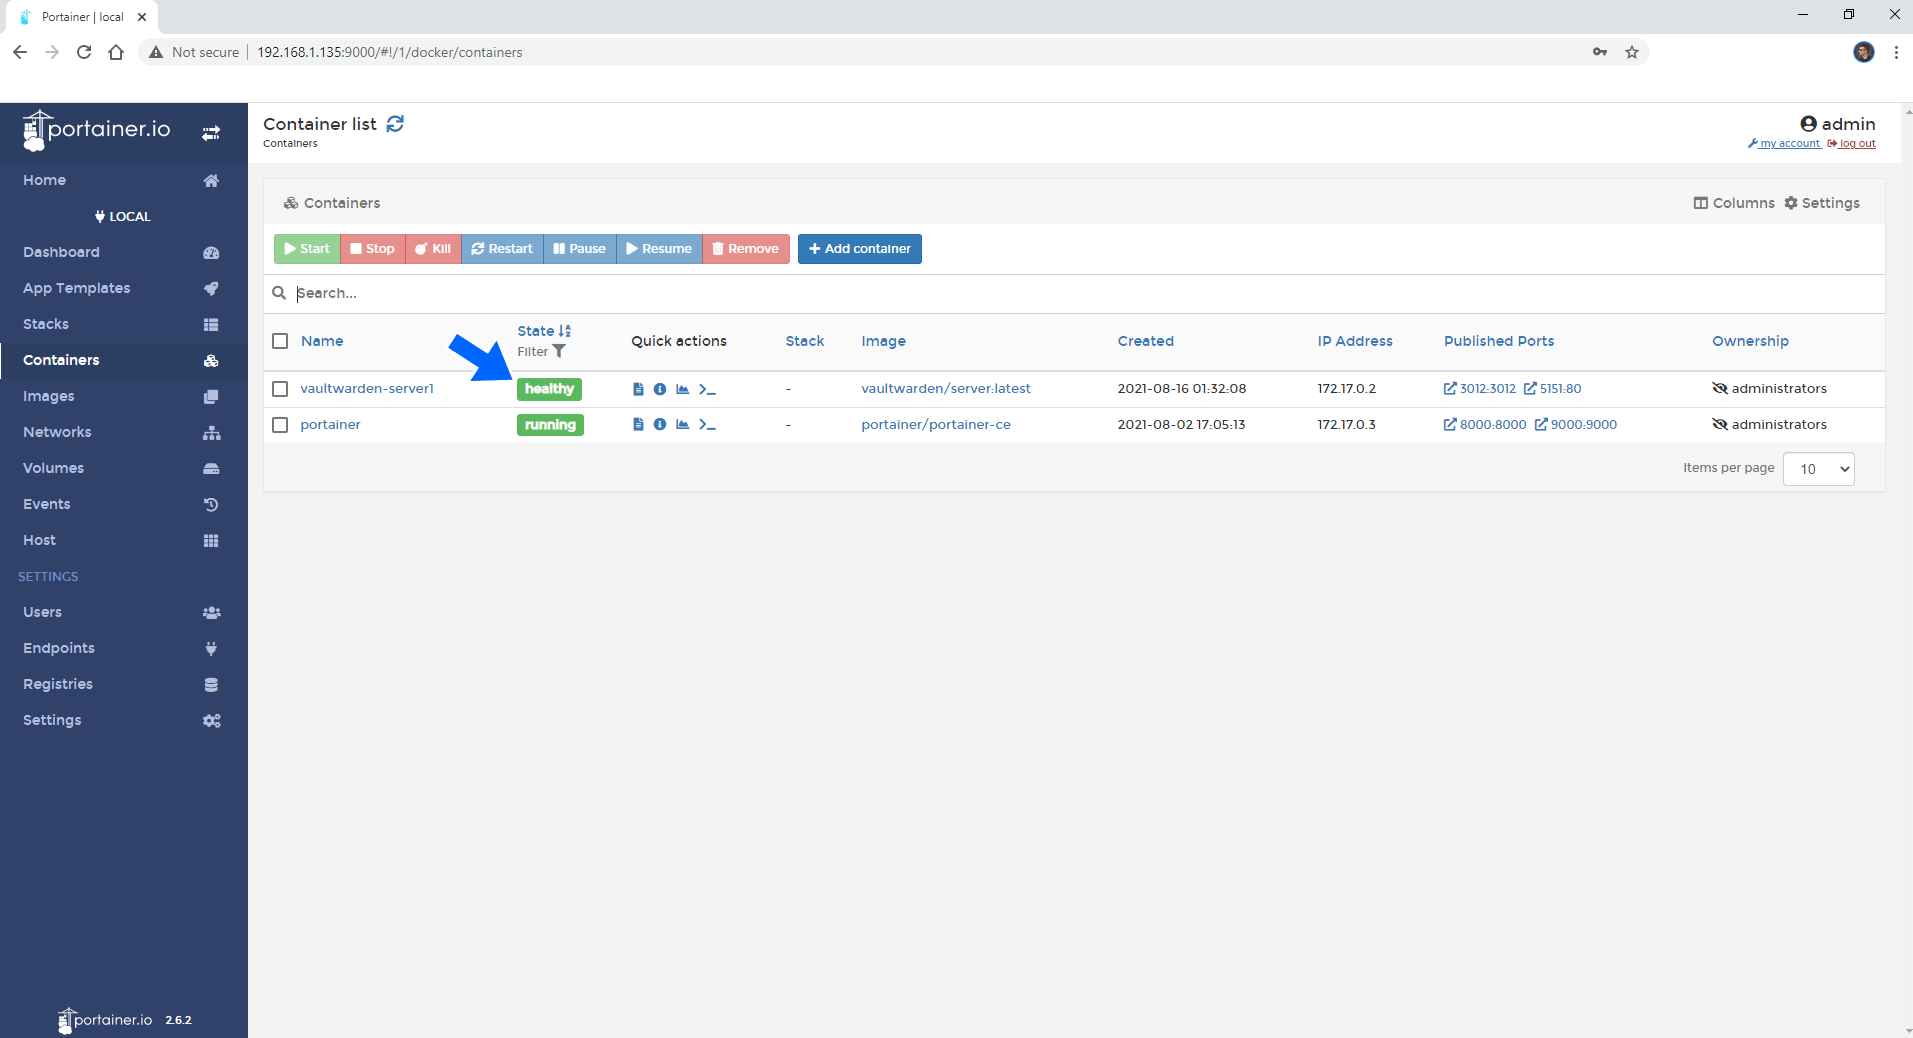 Synology update docker container using Portainer 7